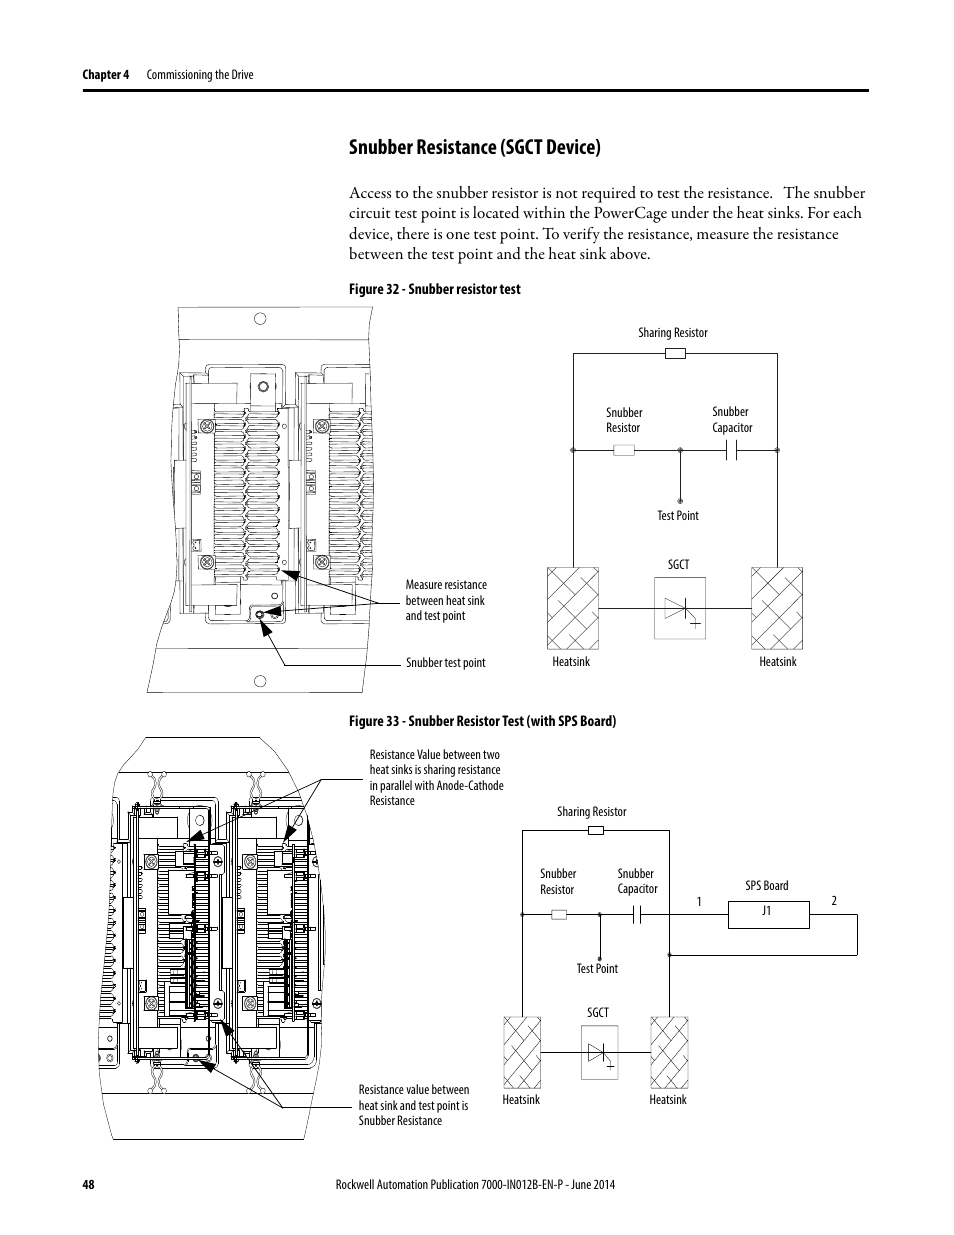 Snubber Resistance Sgct Device Rockwell Automation 7000 Measurement Circuit Diagram Powerflex Medium Voltage Ac Drive B Frame Commissioning Forge Control User Manual Page 48